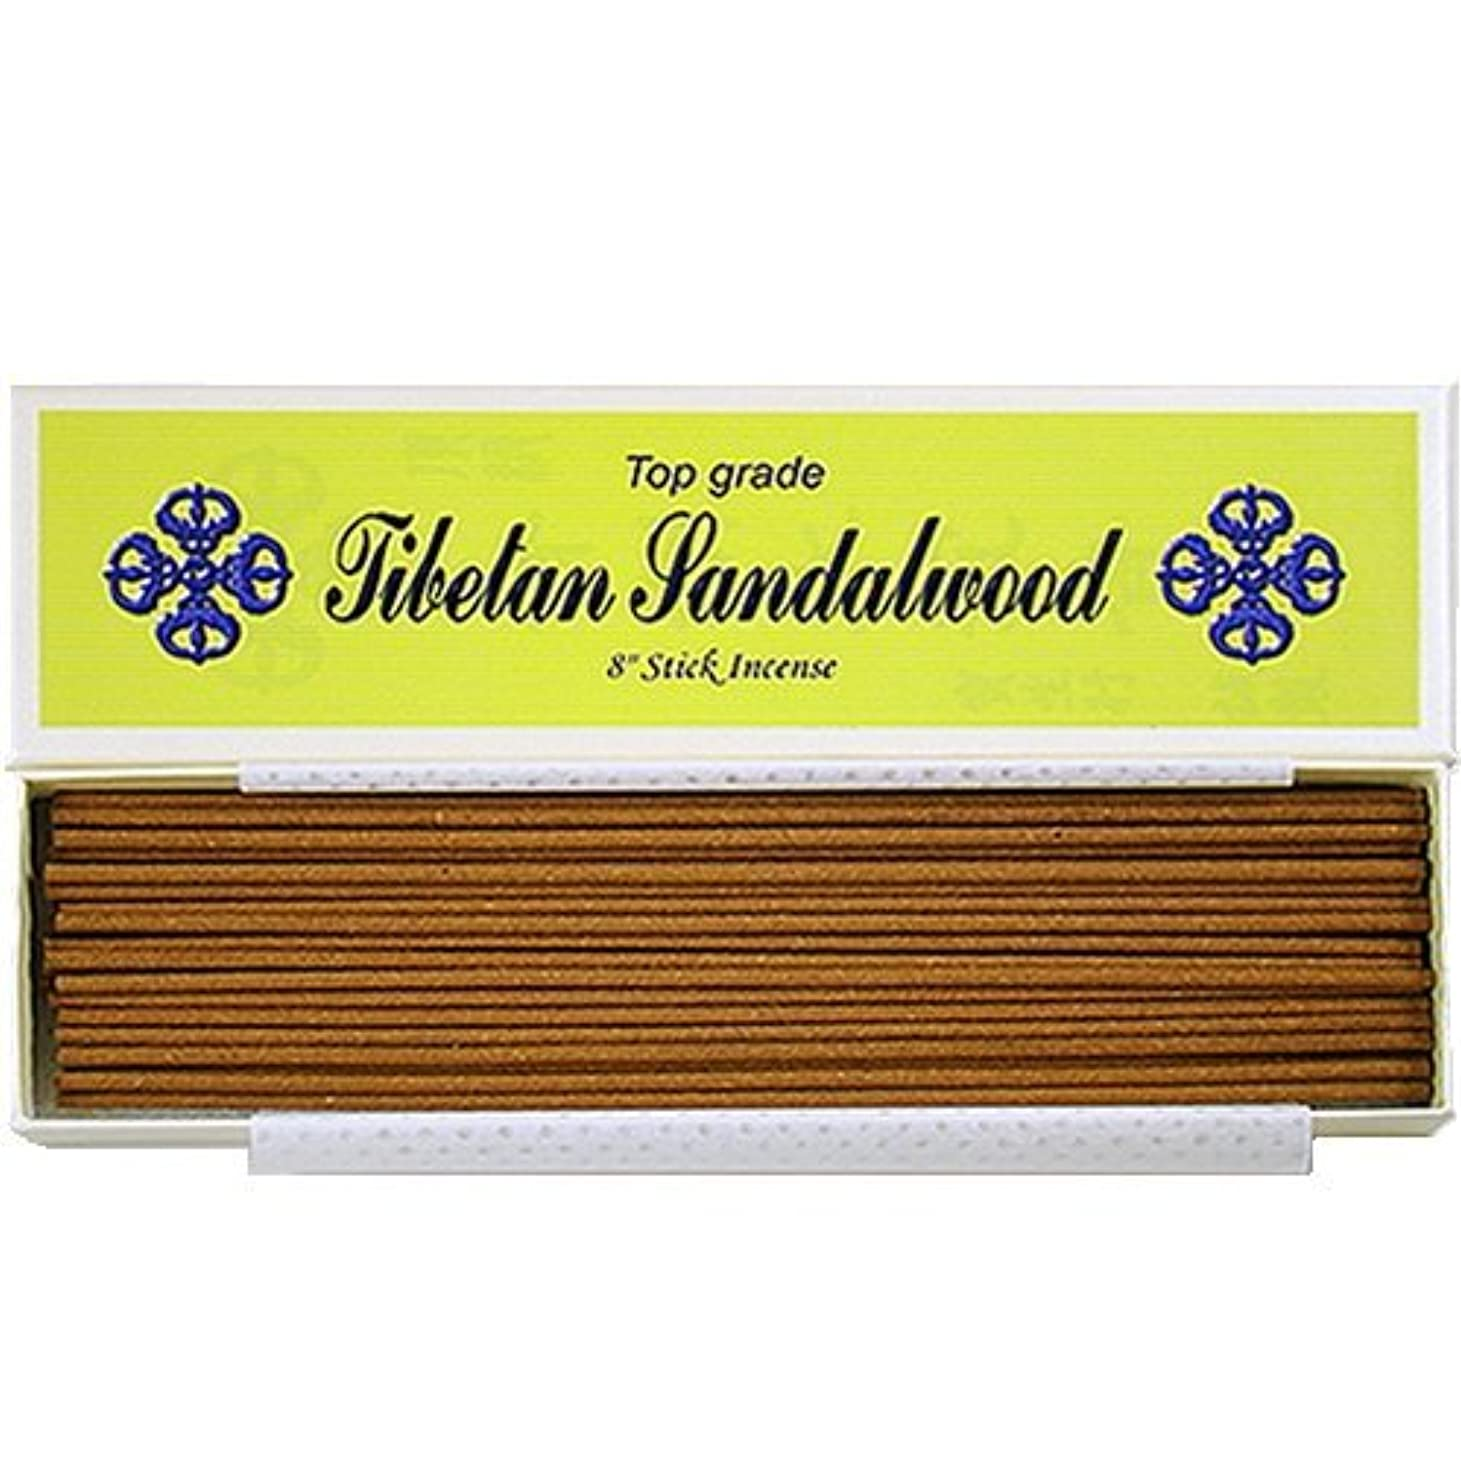 臨検投げる情緒的8 Top Grade Tibetan Sandalwood Stick Incense - 100% Natural - J007Tr-r1 [並行輸入品]